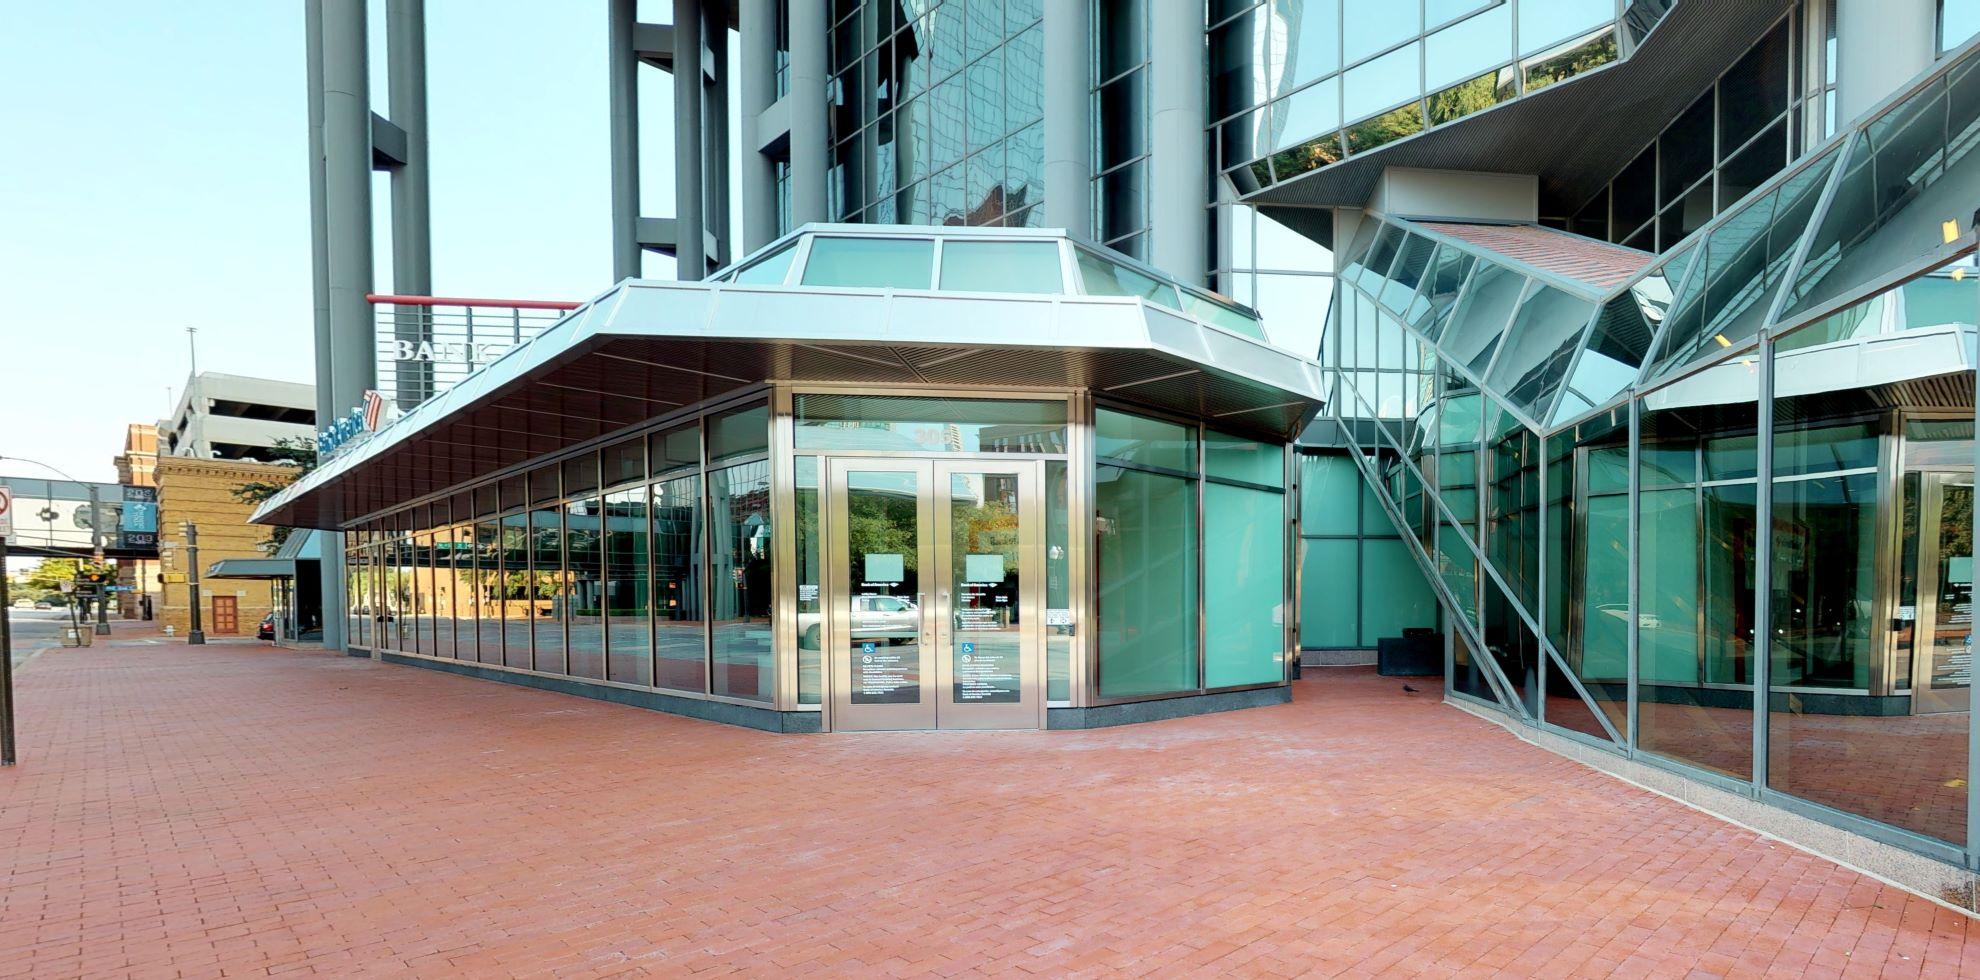 Bank of America financial center with walk-up ATM | 305 Commerce St, Fort Worth, TX 76102